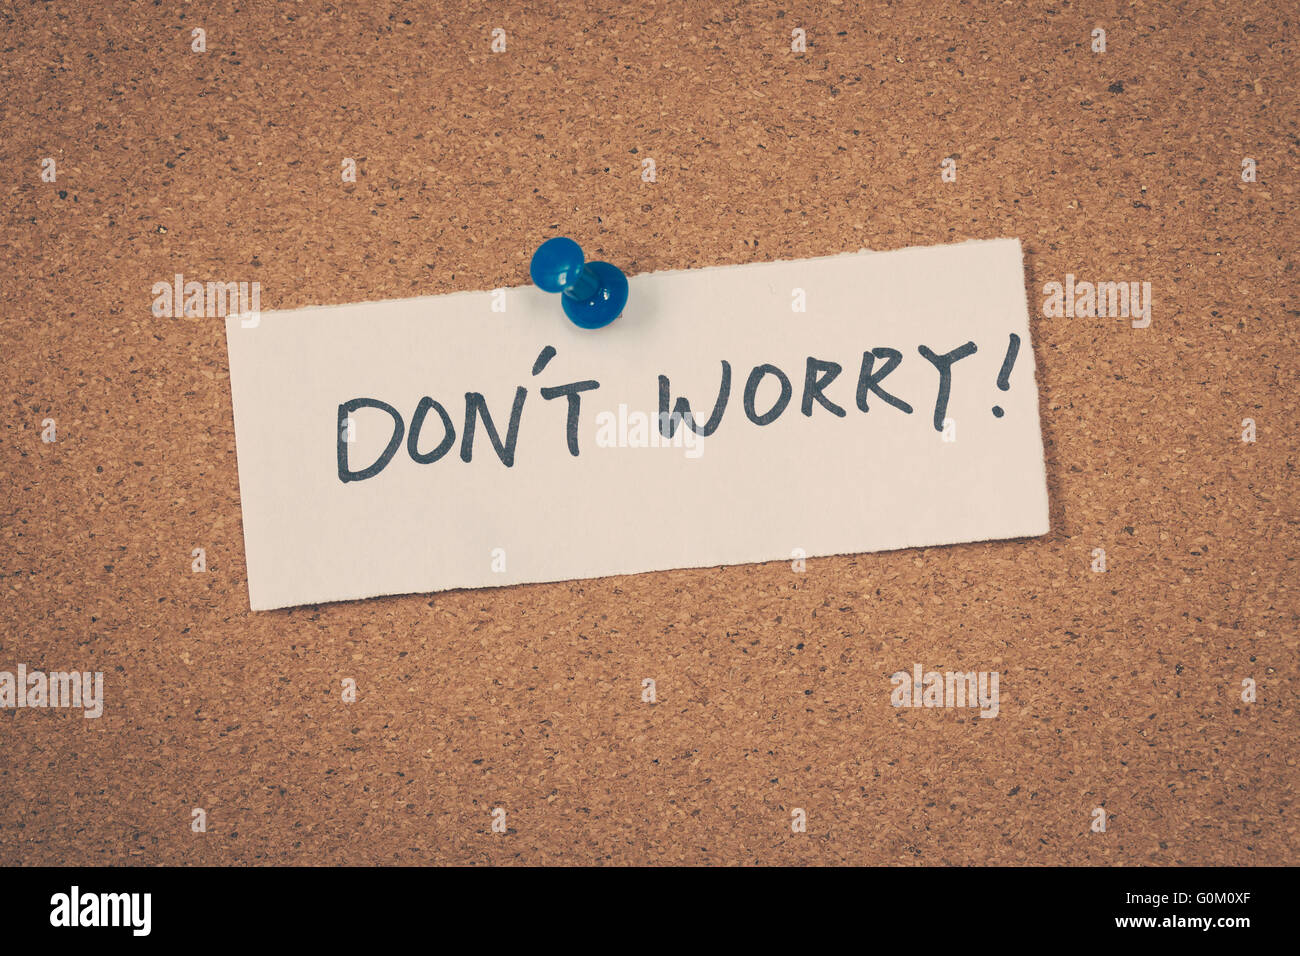 Don't worry - Stock Image